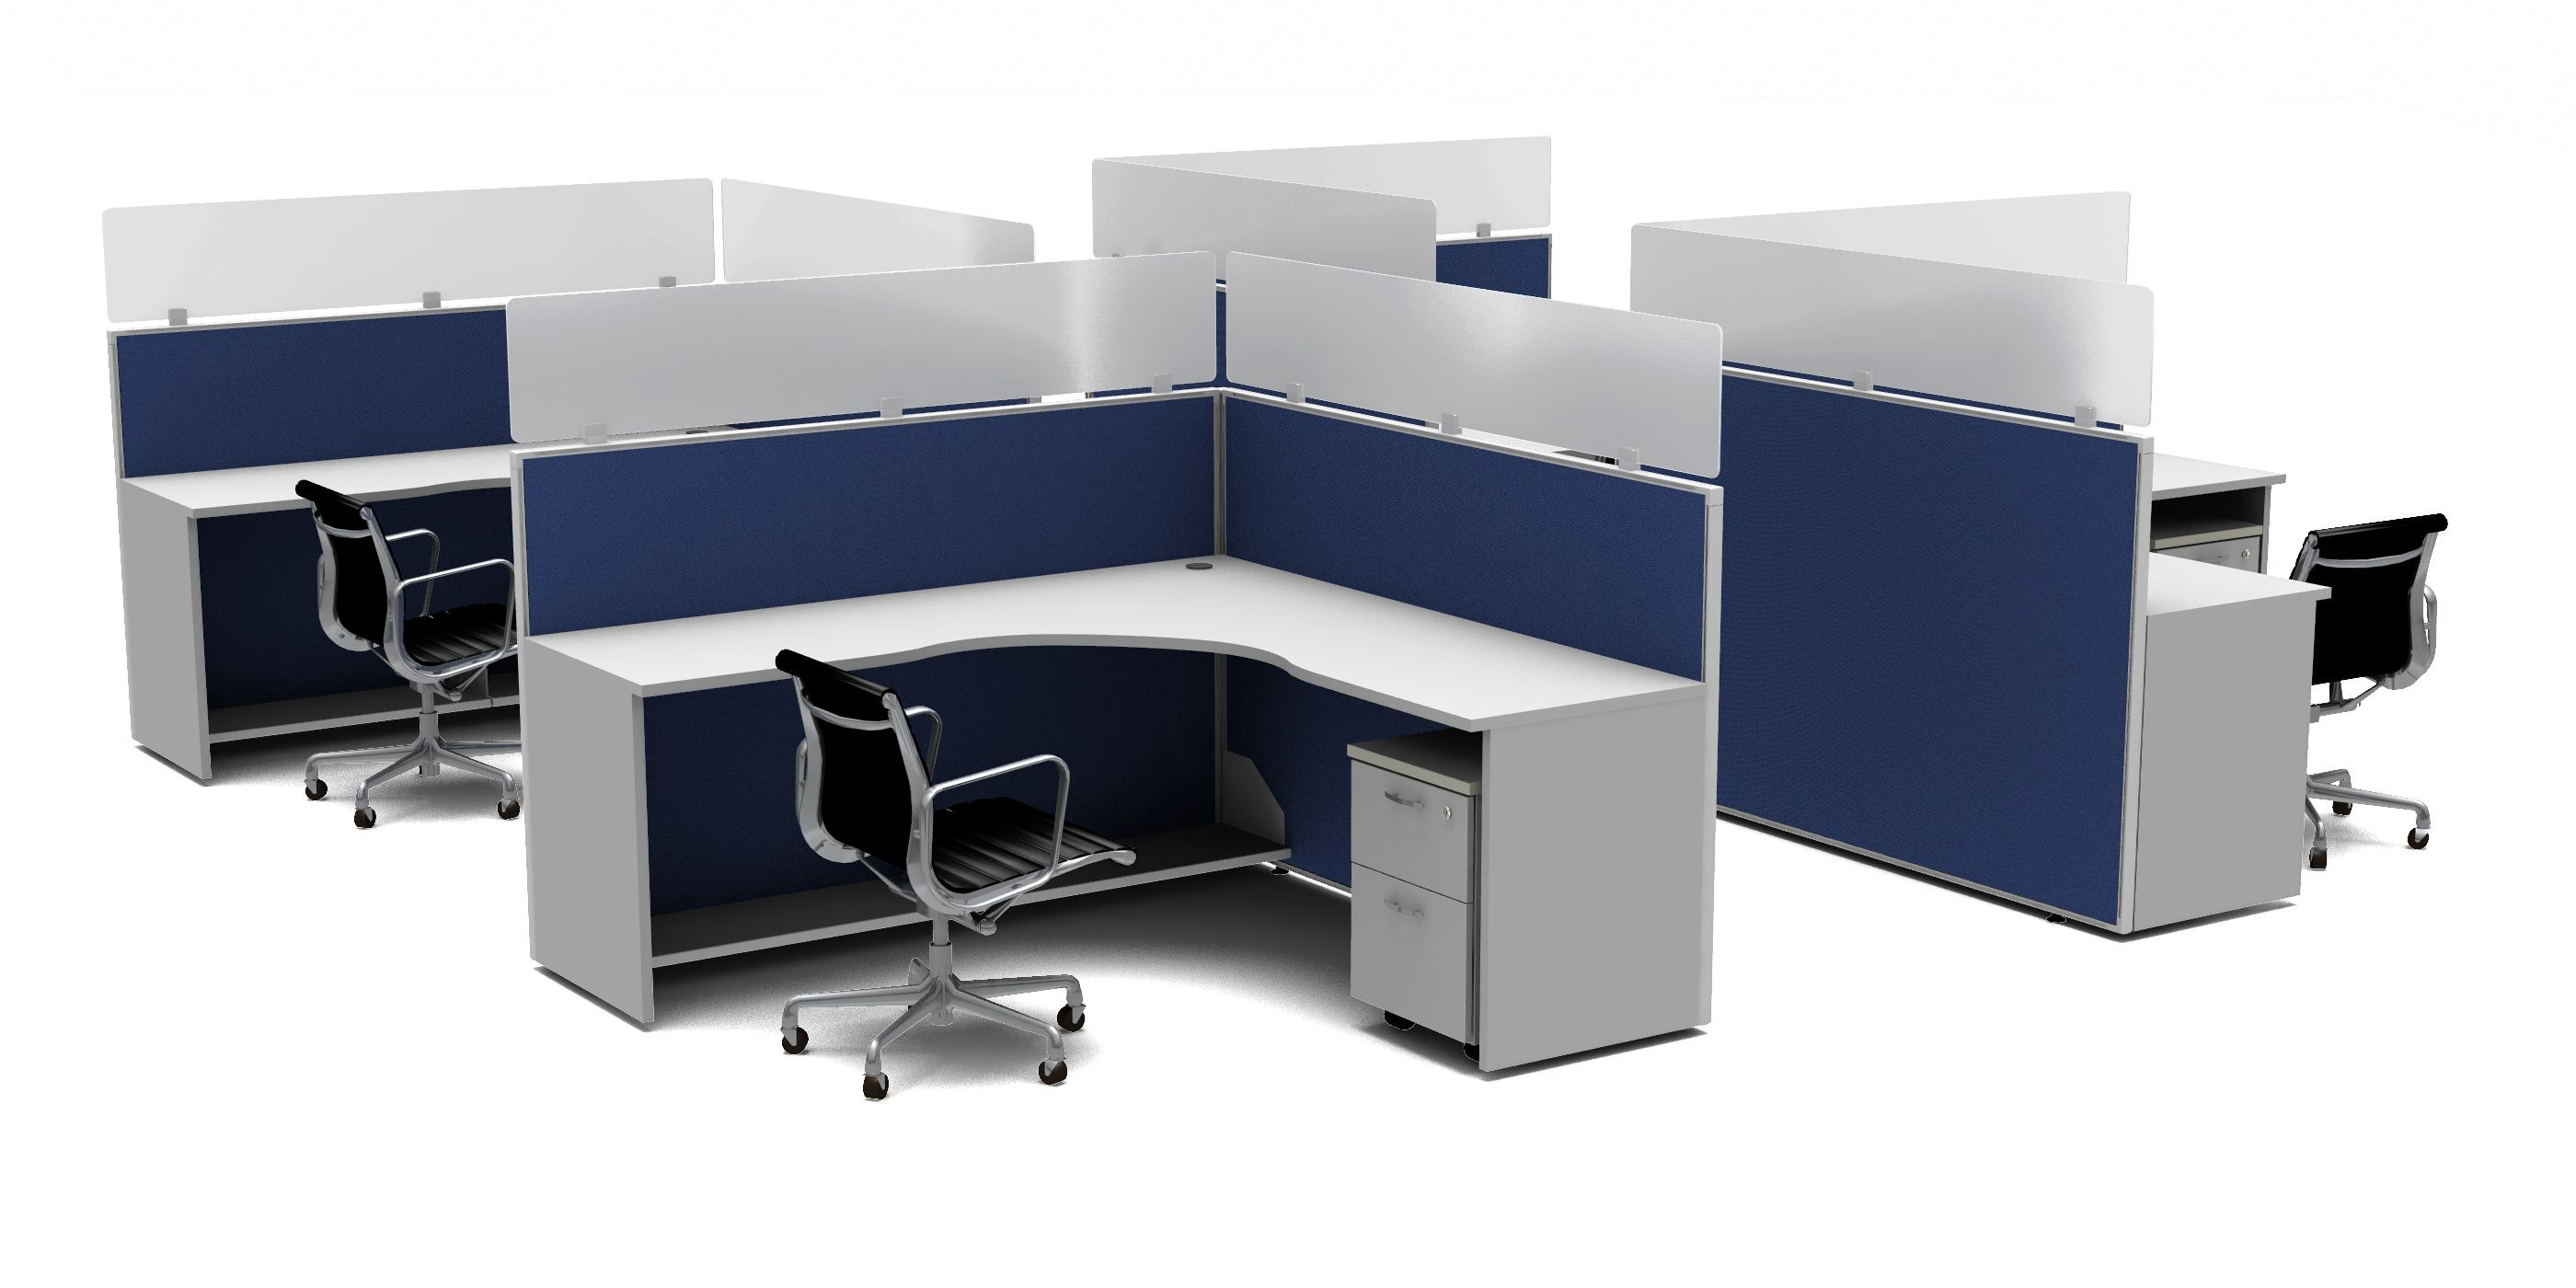 Stackers Cubicle Extender Panels Desk Privacy Solutions Cubicle Walls Cubicle Panels Desk Dividers